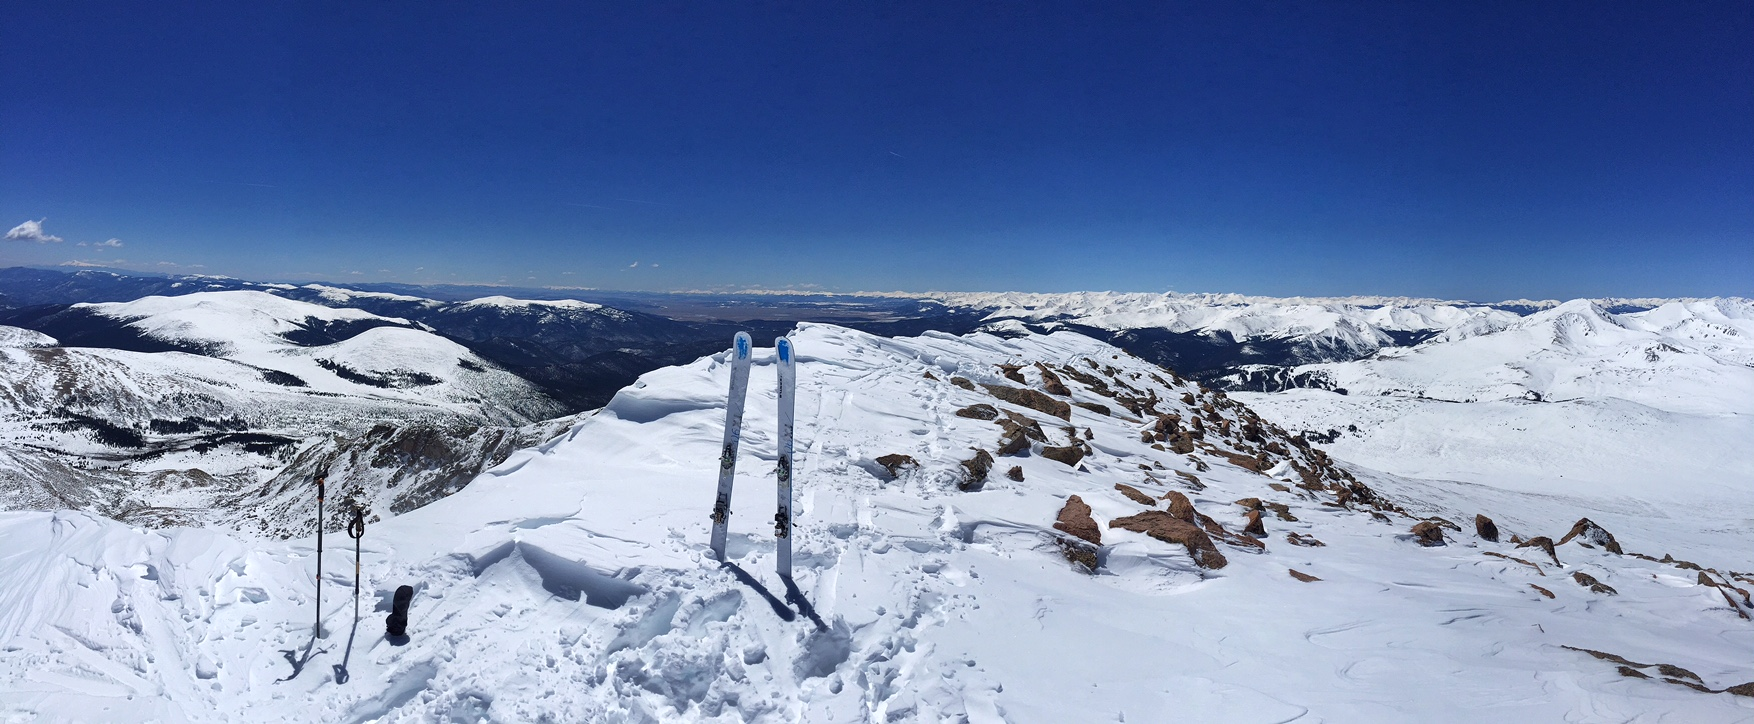 Looking west from Bierstadt's summit…what a flawless day!